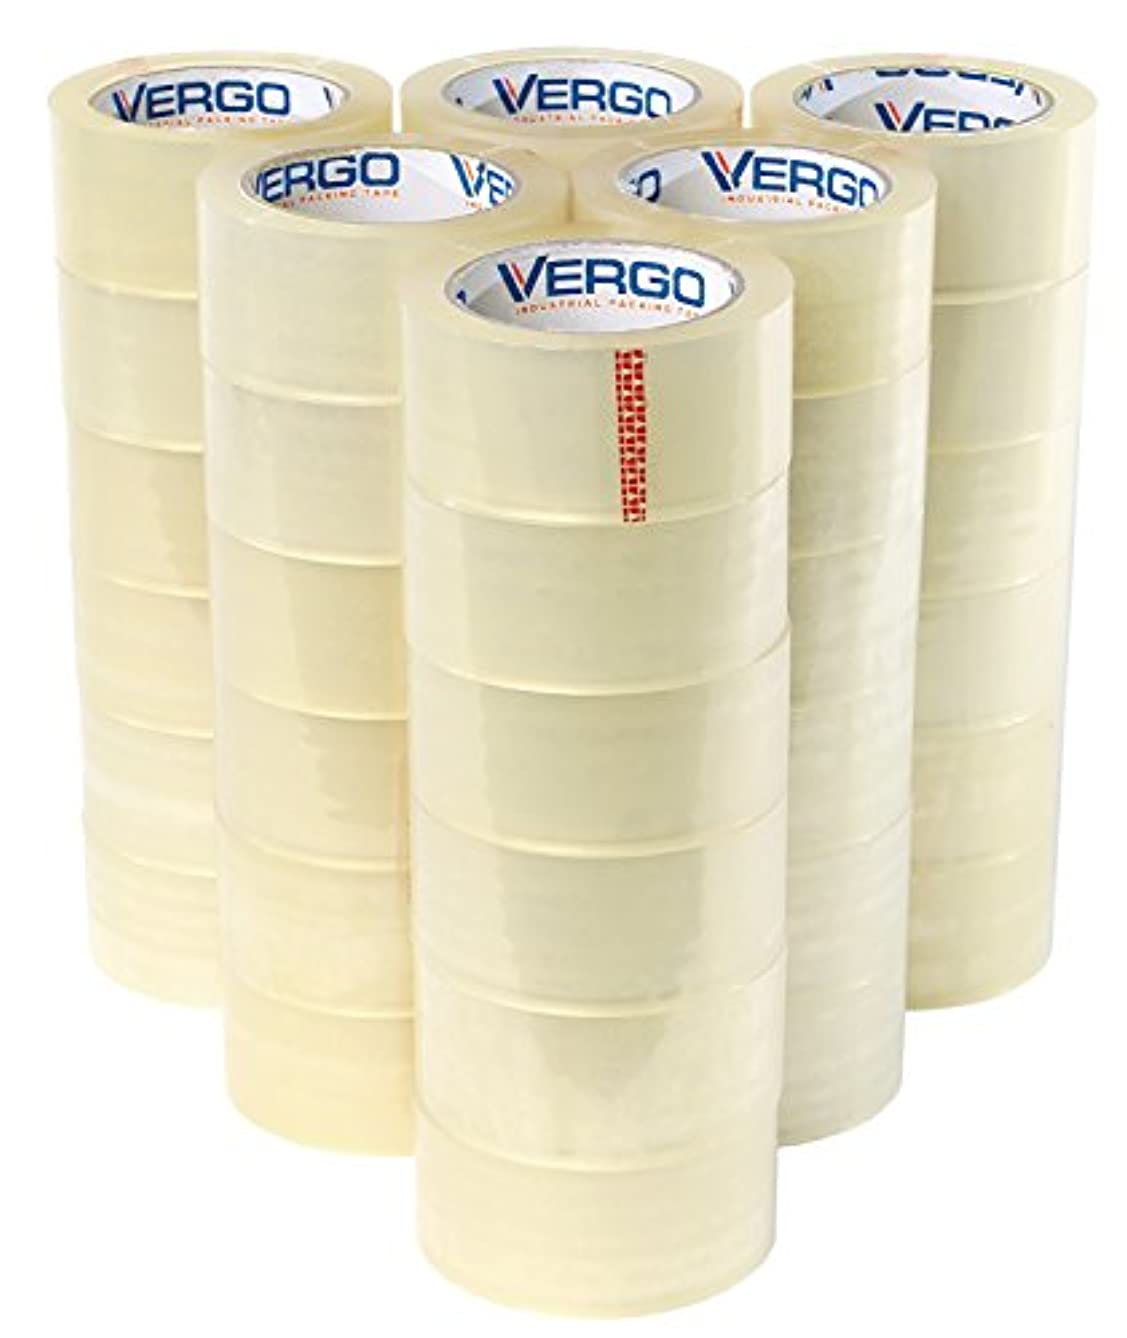 Vergo Industrial Heavy Duty Clear Packing Tape 2.7mil for Moving Packaging Shipping and Office (36 Pack)